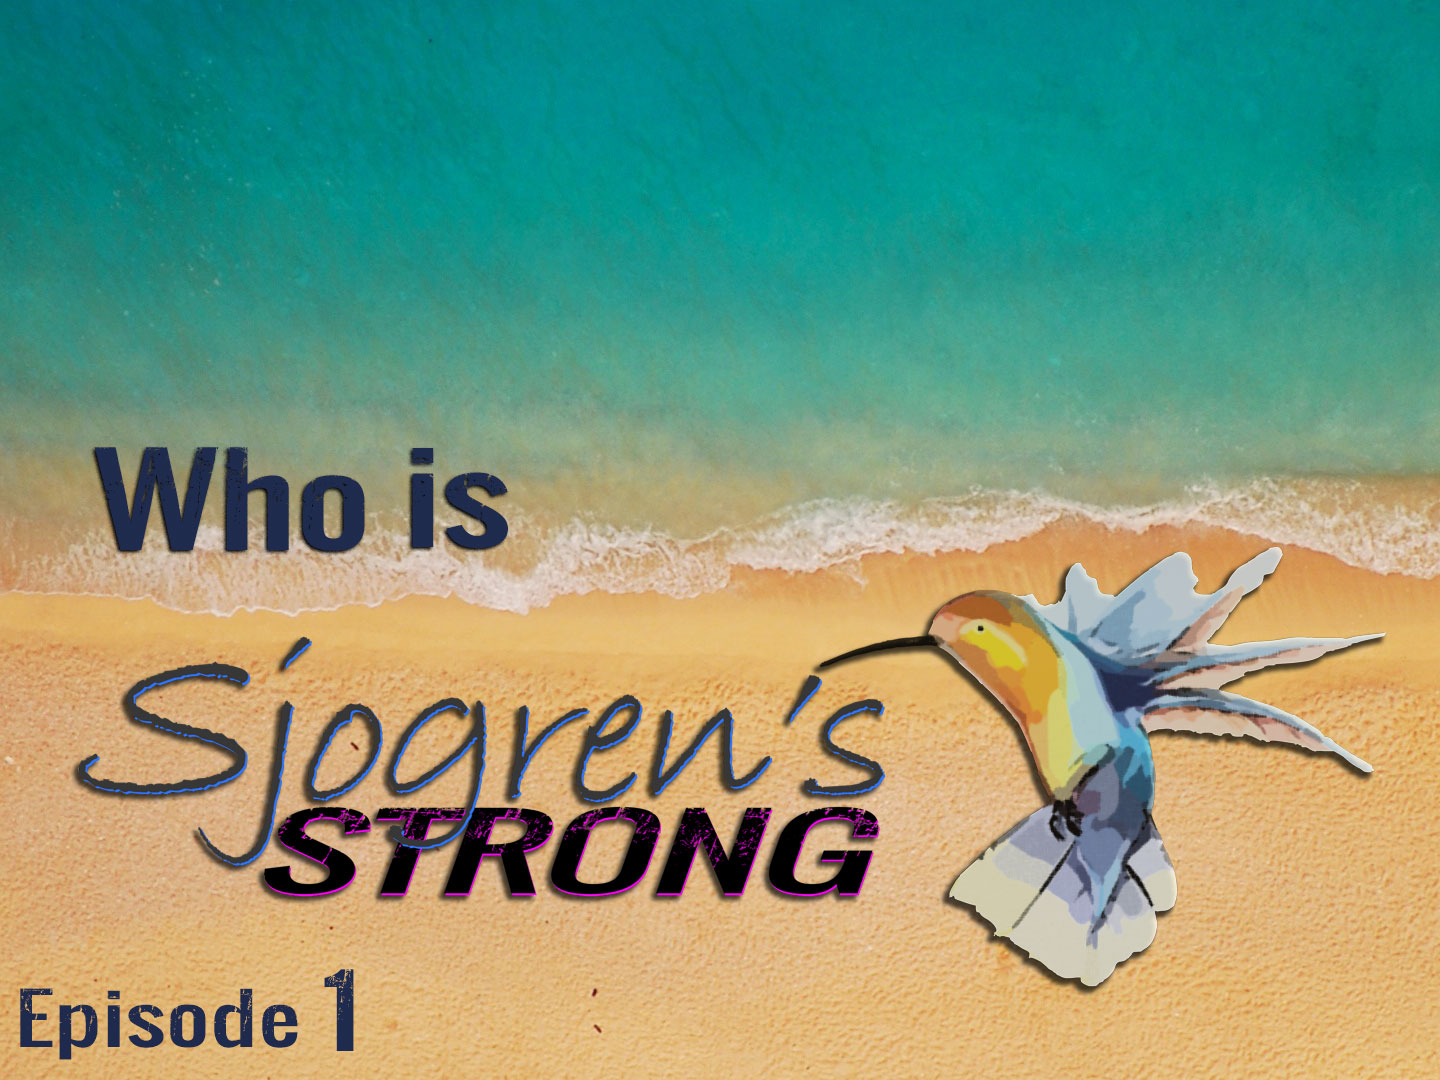 Episode #1, Who is Sjogren's Strong